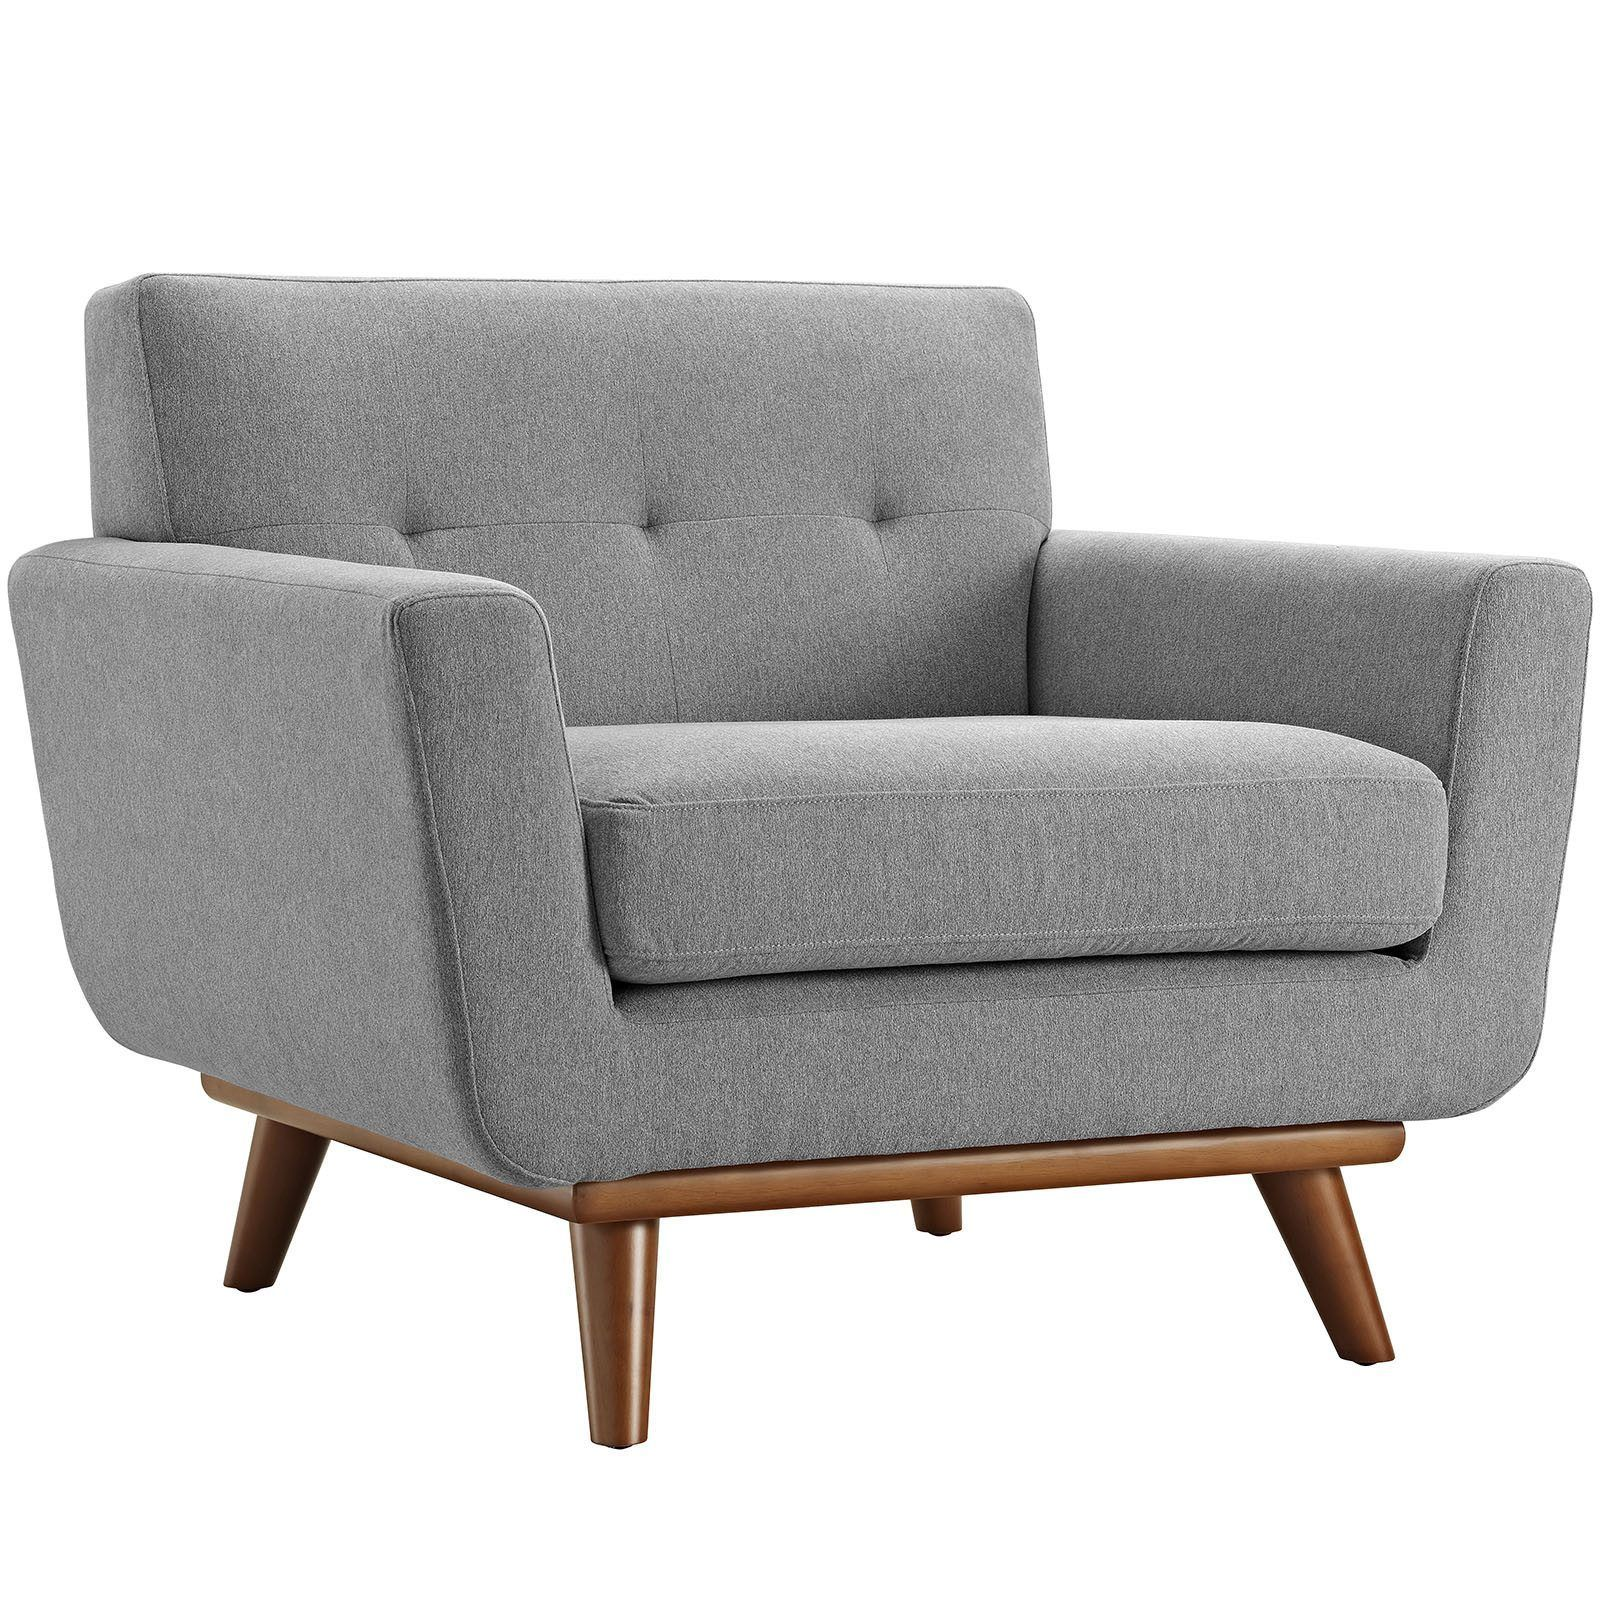 Fabric Upholstered Armchair With Rubberwood Legs Dekor Tasarim Cit